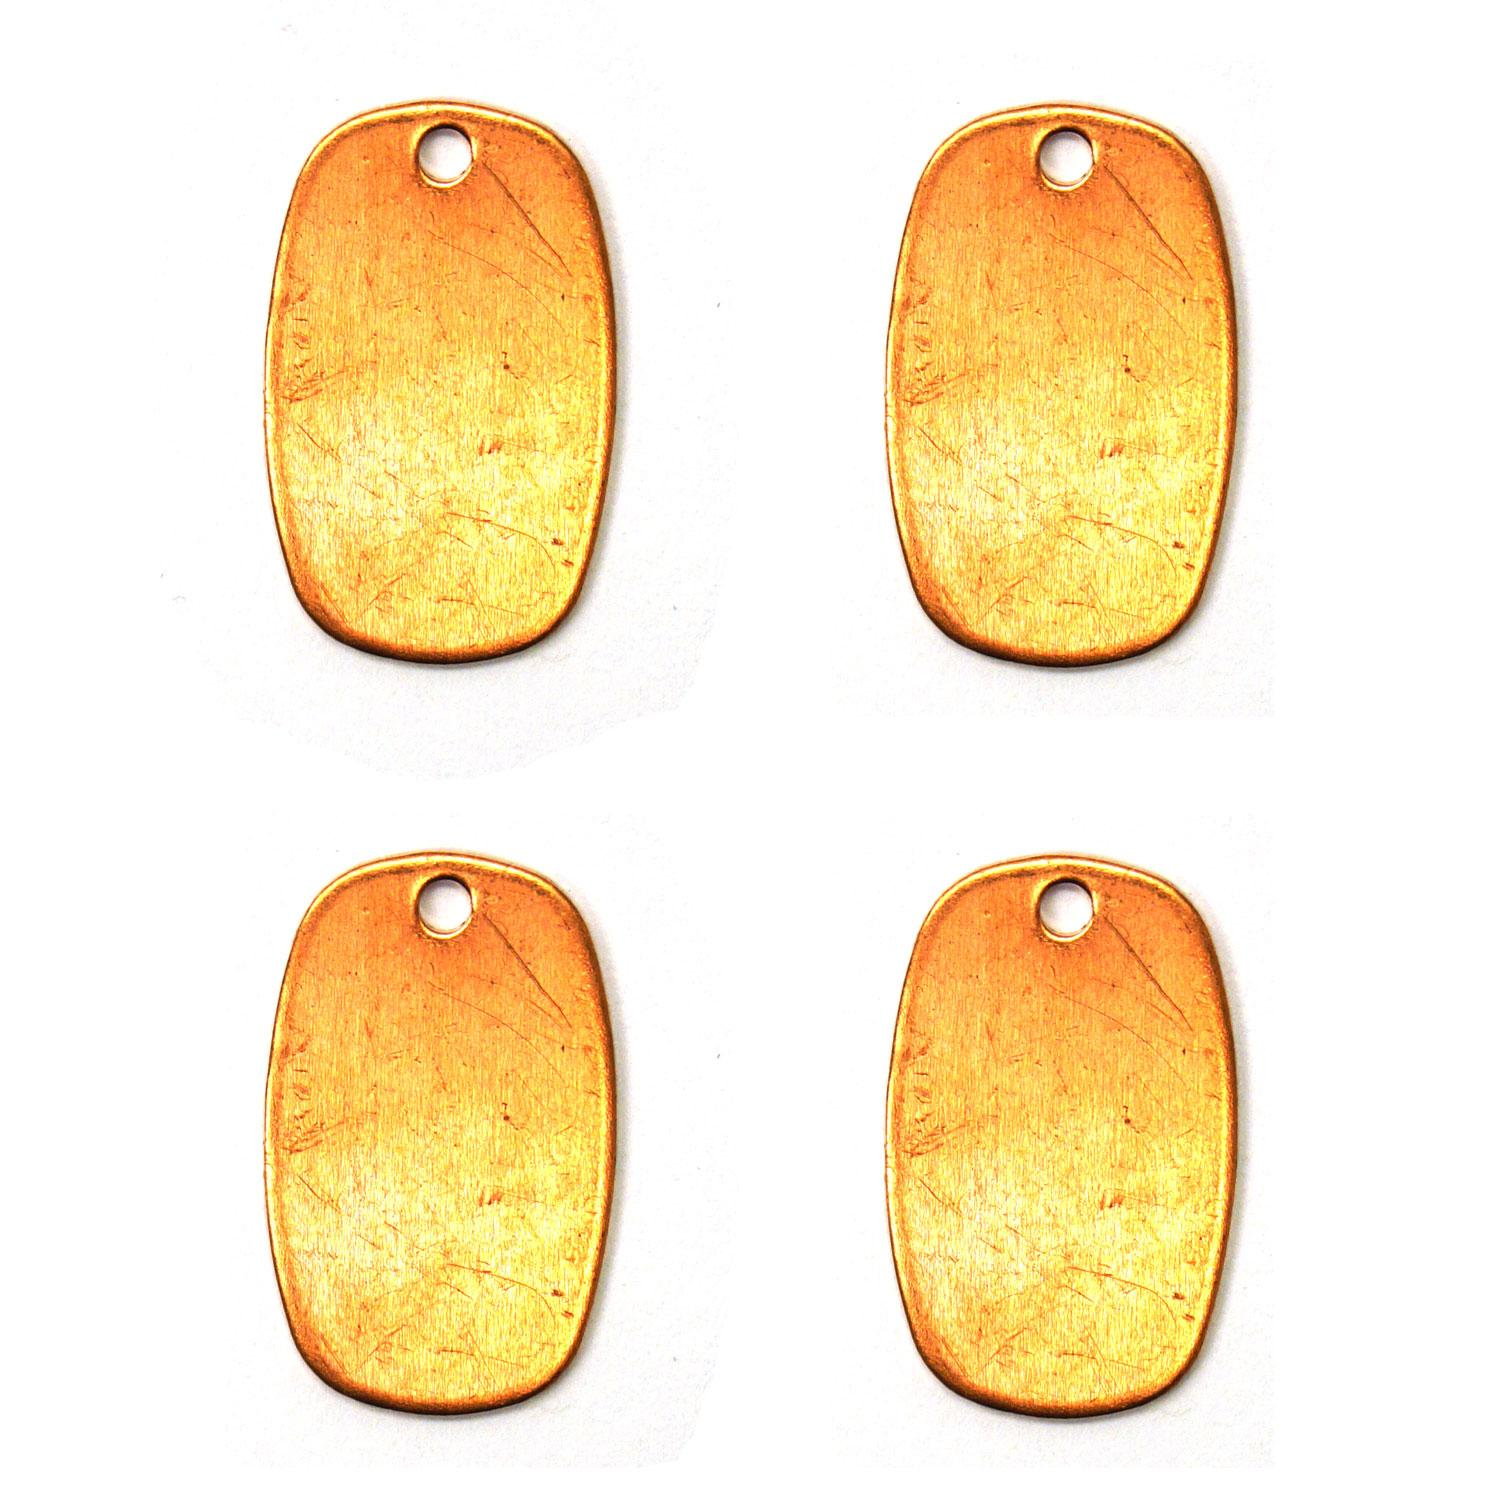 Small Rounded Rectangle Copper Shape with Hole - 4 Pack